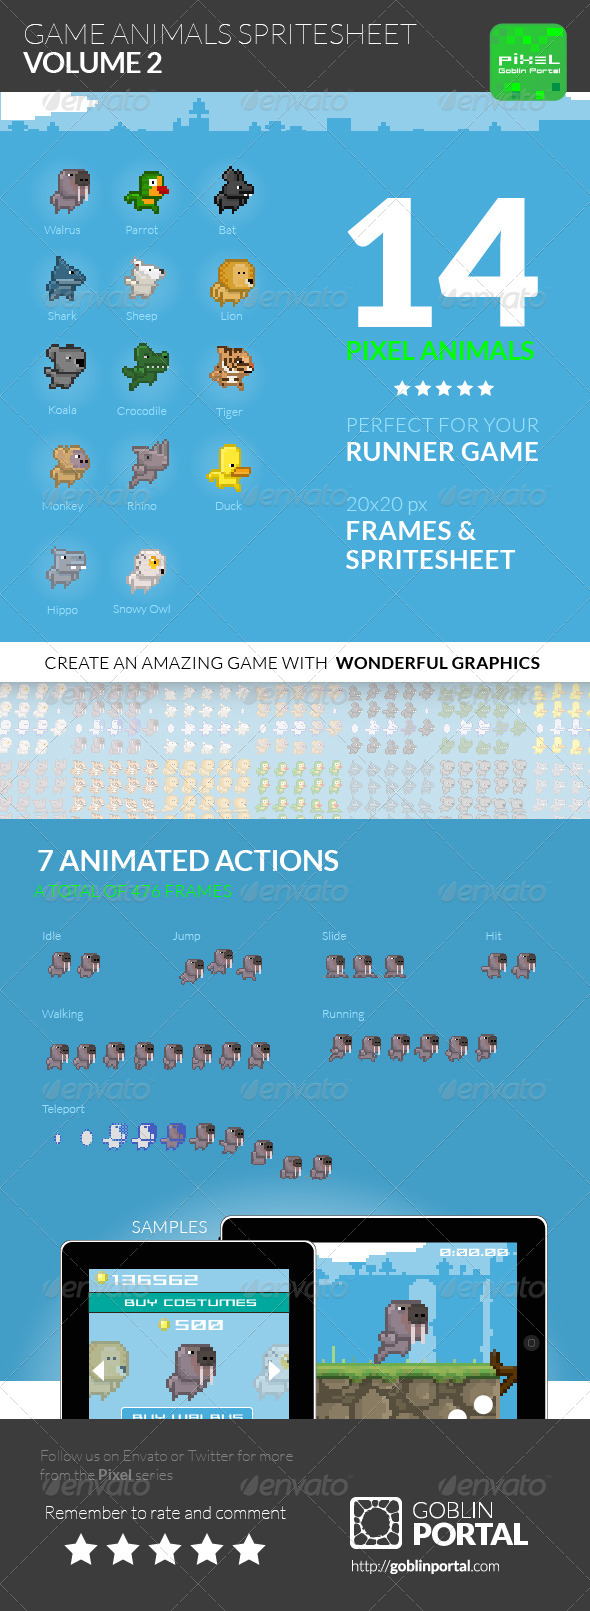 GraphicRiver Game Animals Spritesheet Volume 2 7855220